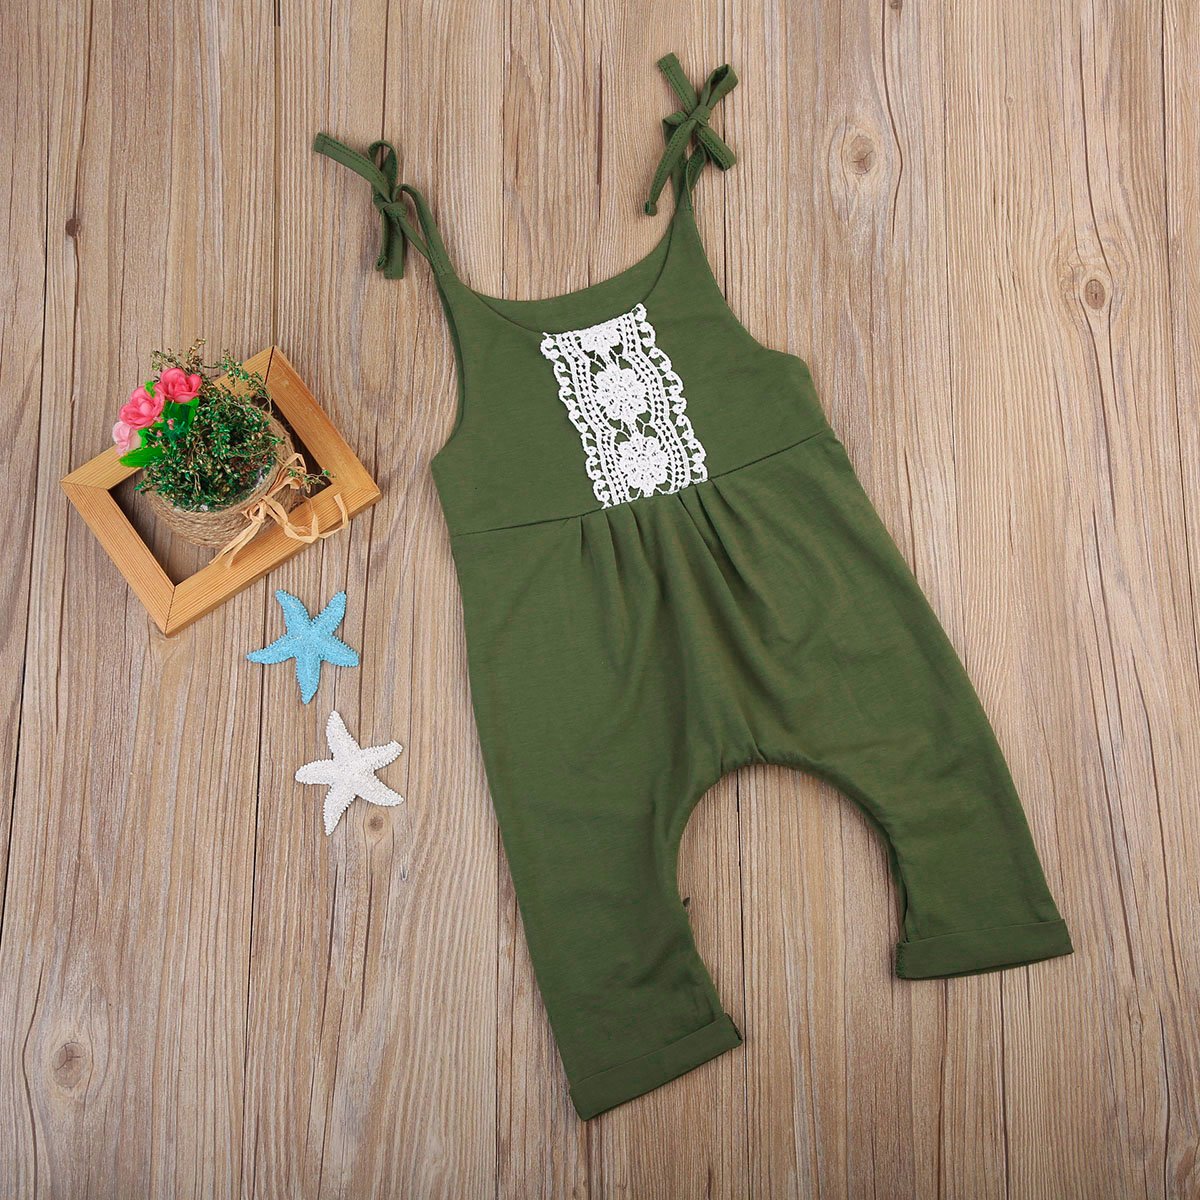 d7e74180d Pudcoco 2018 Baby Girl Clothes Cute Lace Green Romper Newborn Baby ...